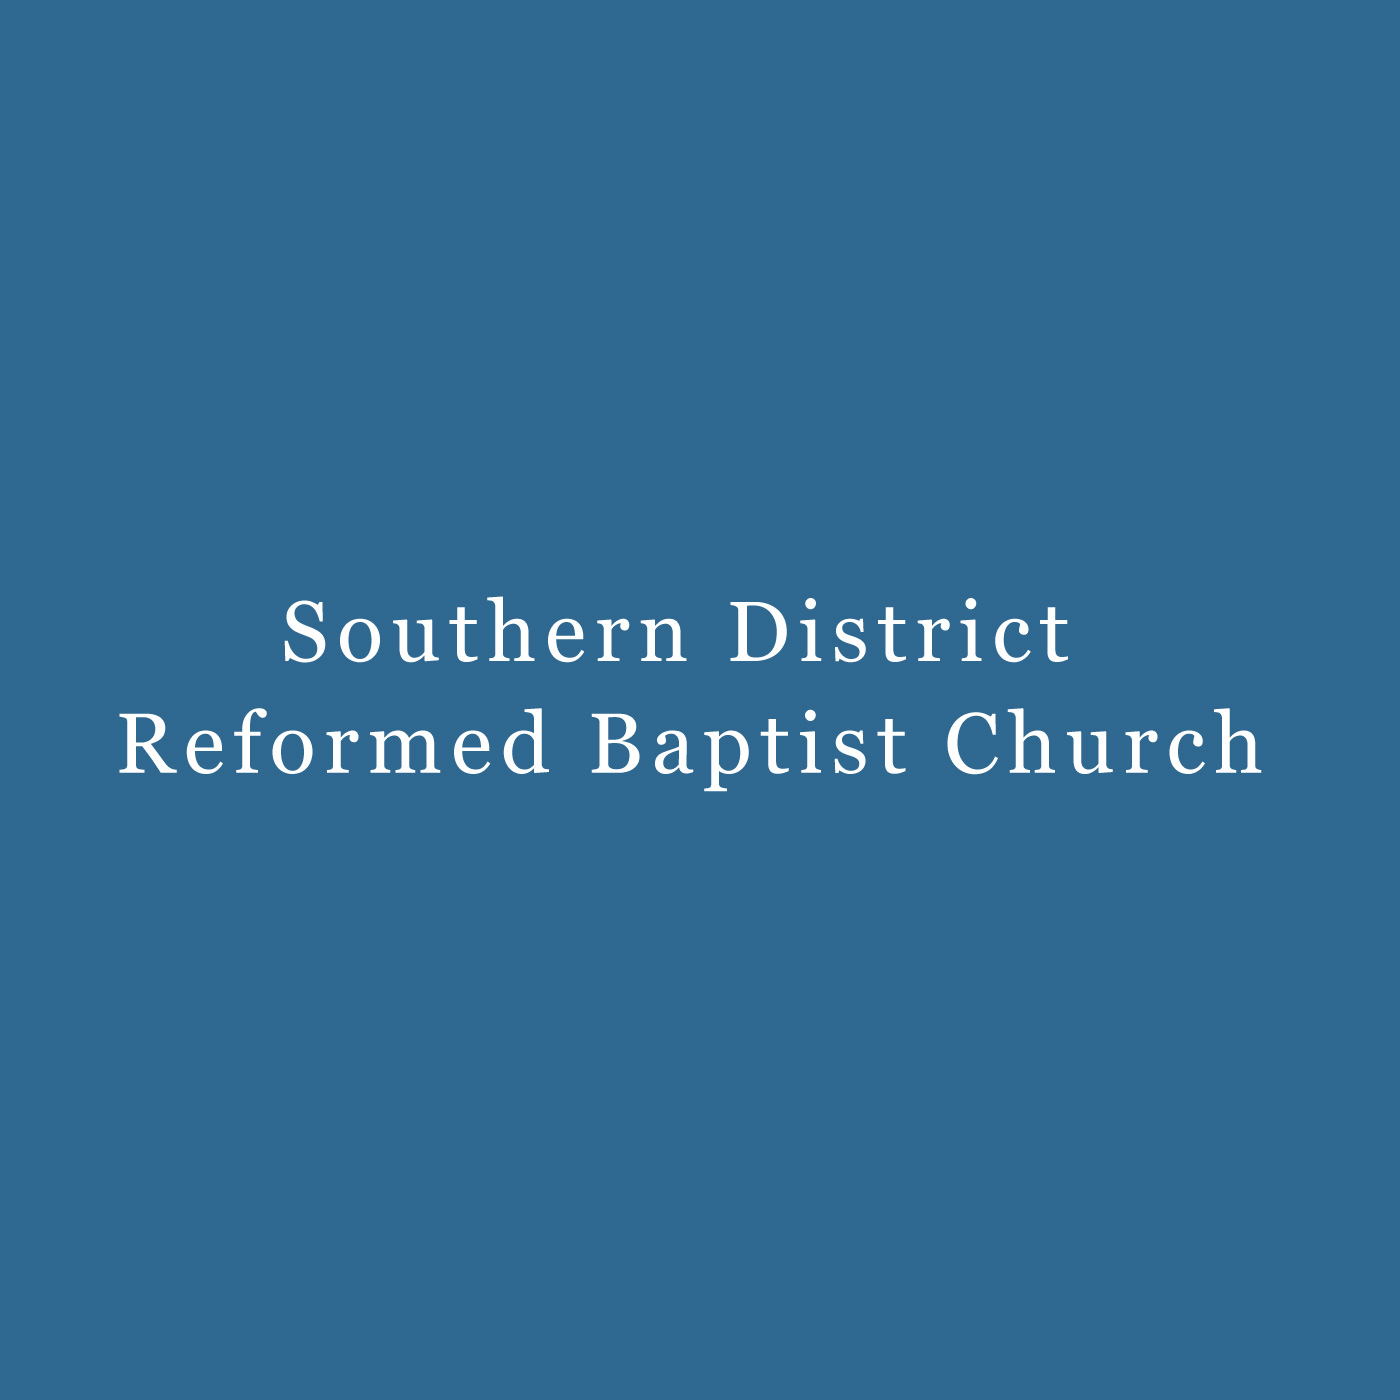 Southern District Reformed Baptist Church